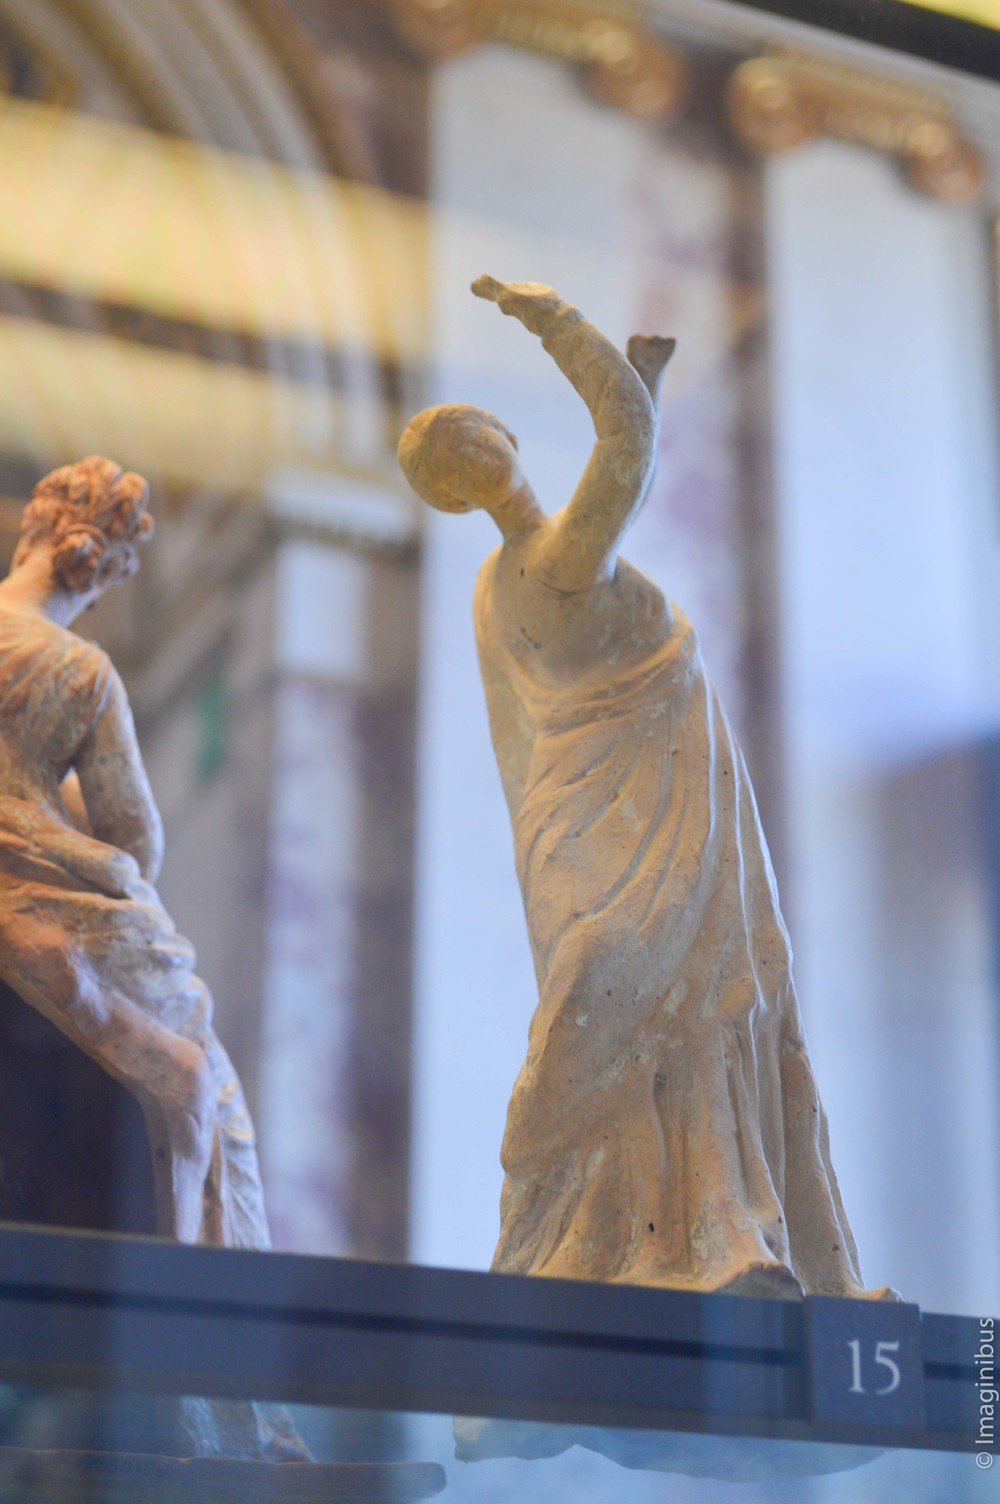 Louvre, Terracotta Statue, Greek Woman Dancing